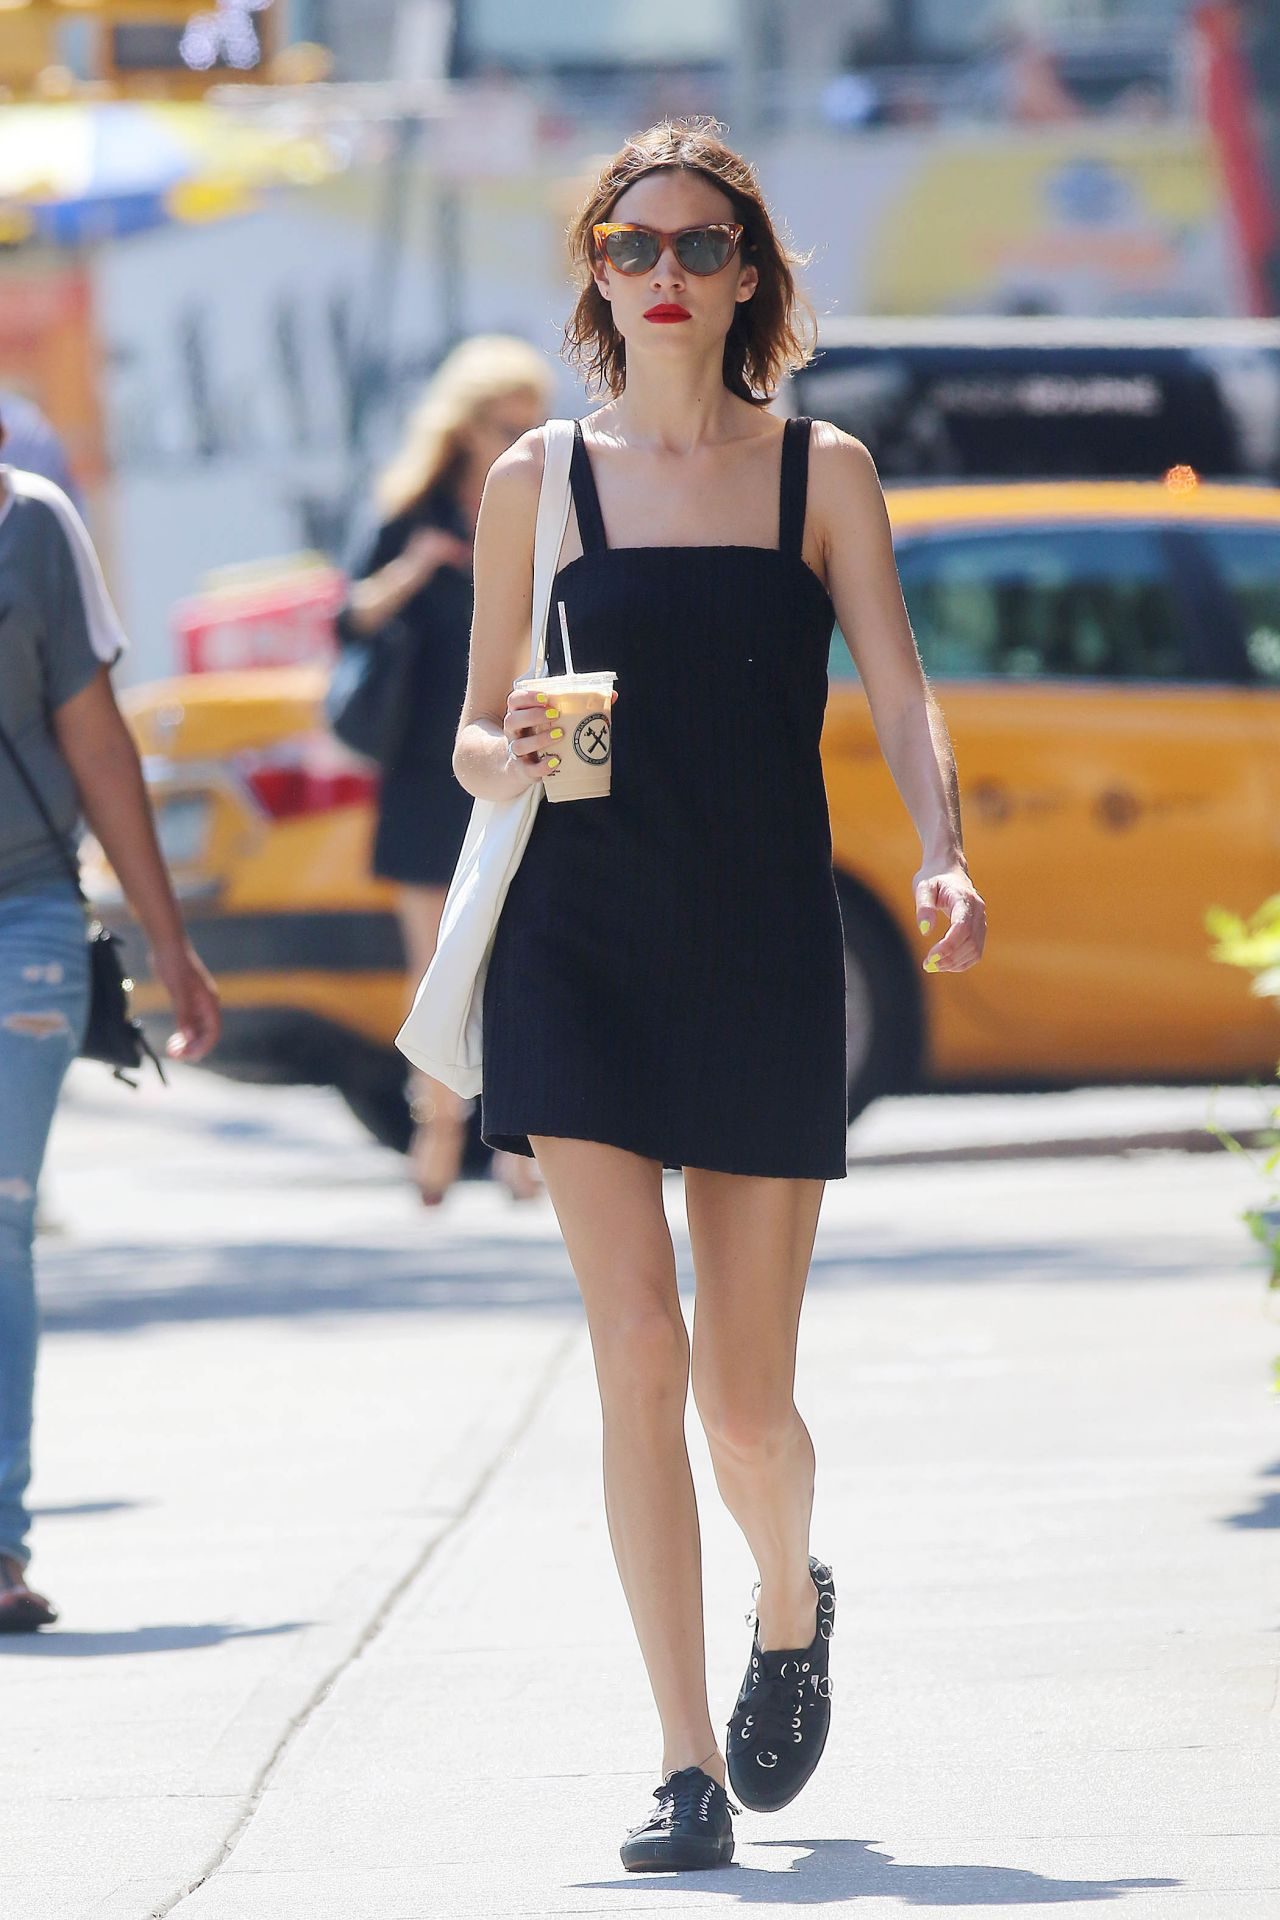 alexa chung in summer mini dress new york city 07 18 2016. Black Bedroom Furniture Sets. Home Design Ideas